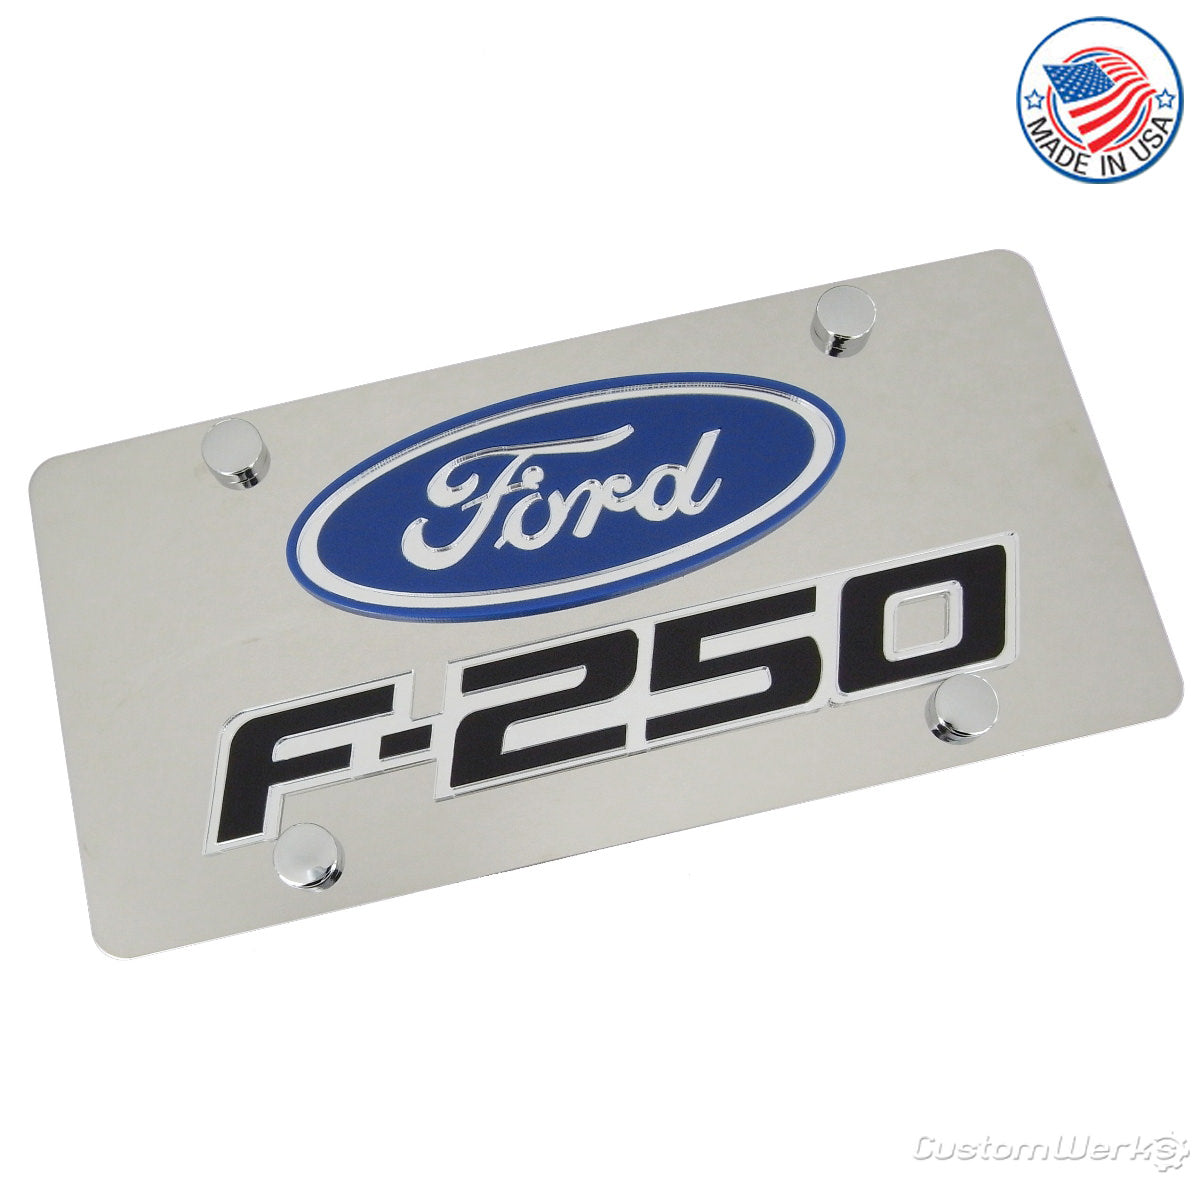 Ford F-250 Logo Plate